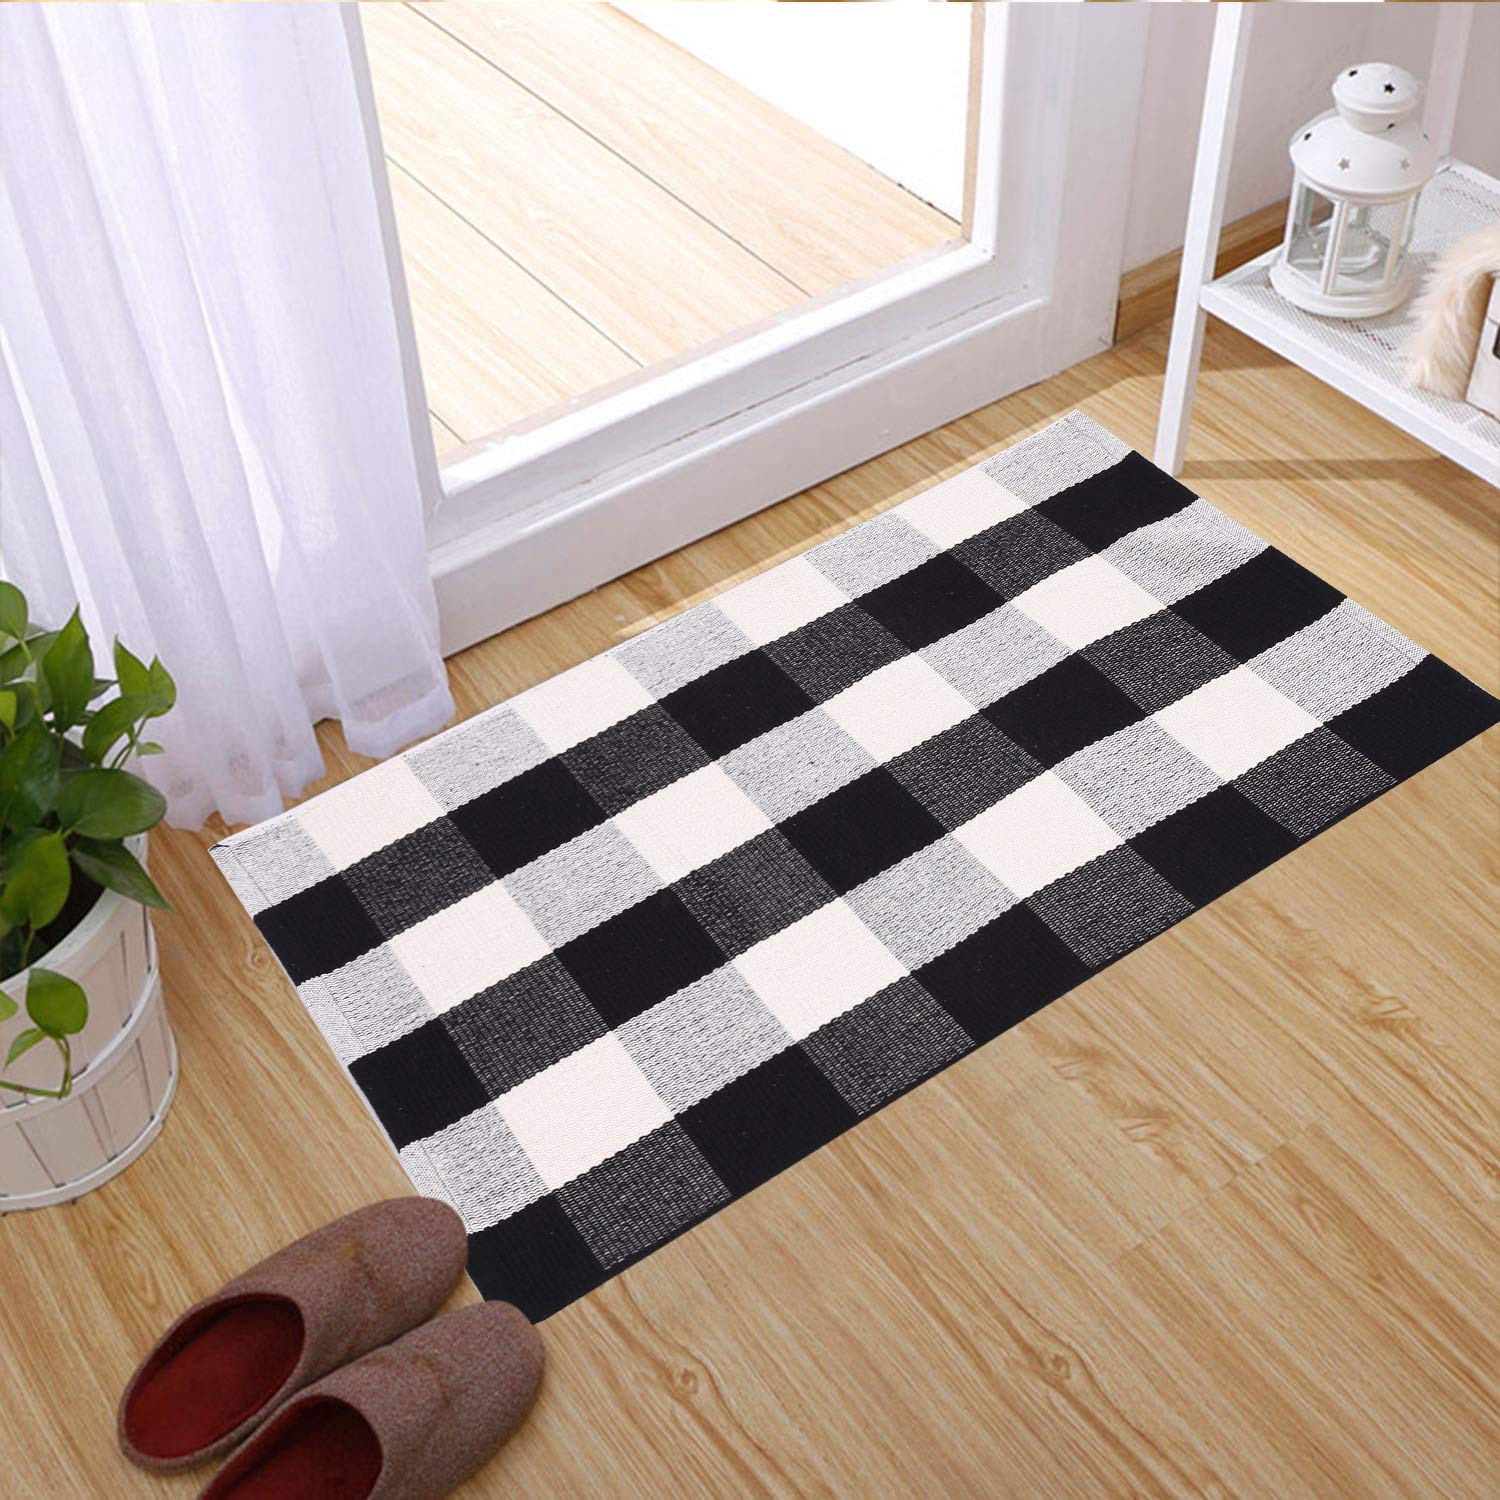 USTIDE Black and White Plaid Rug Rag Rug Collection Hand Woven Floor Runner Rug Black and White Checkered Cotton Area Rug 23.6x51